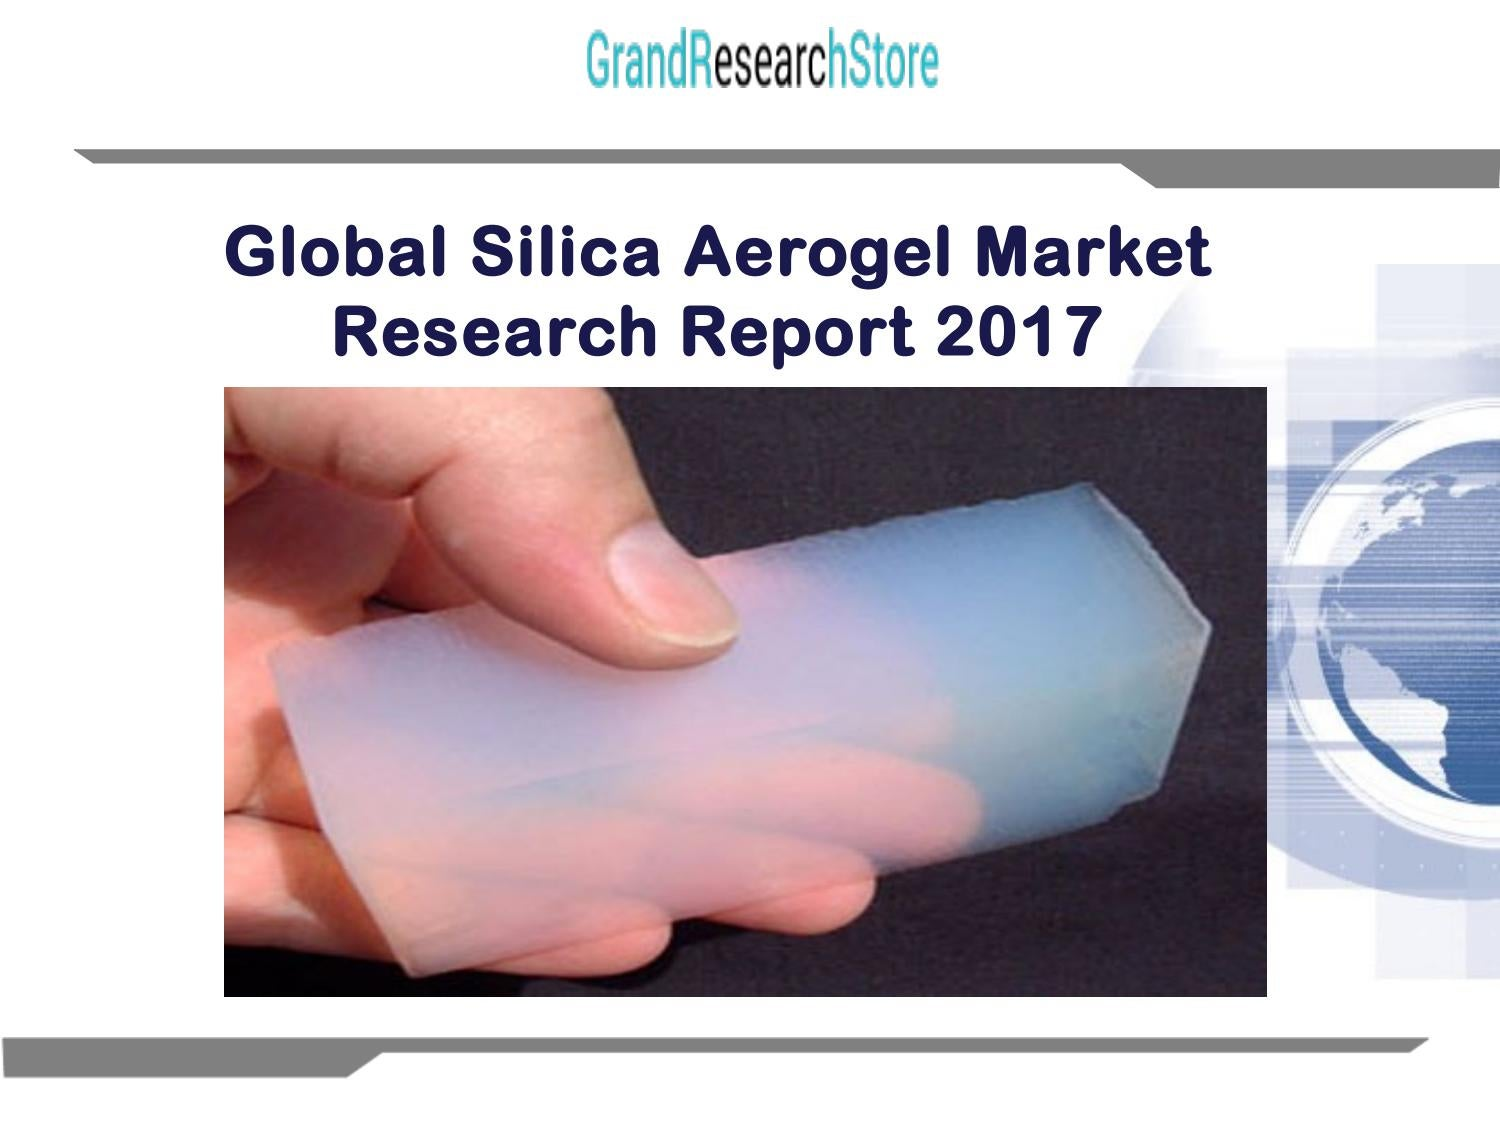 Global silica aerogel market research report 2017 by